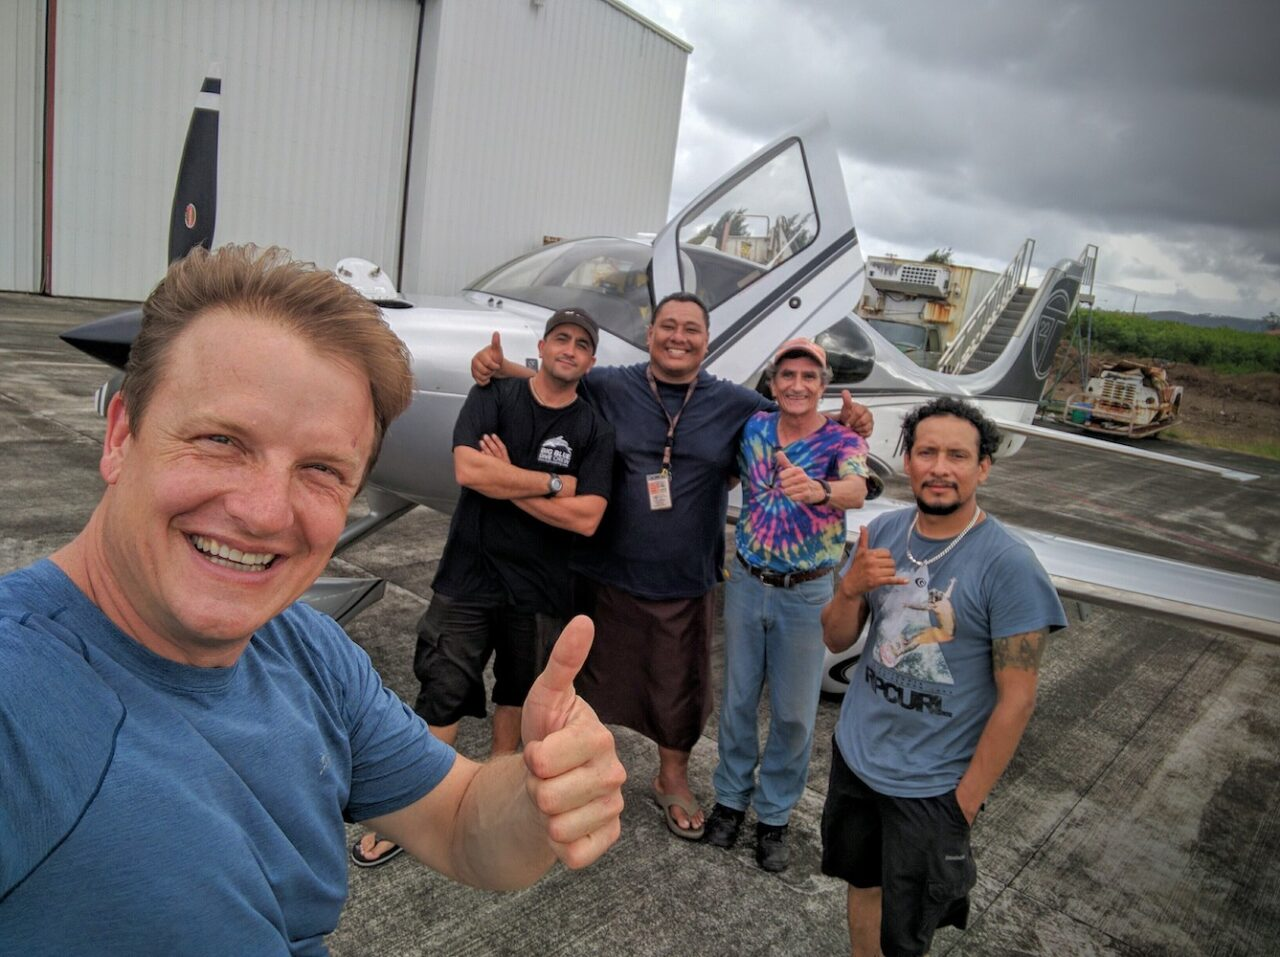 F – This crew rocks – they keep pilots alive on the high seas